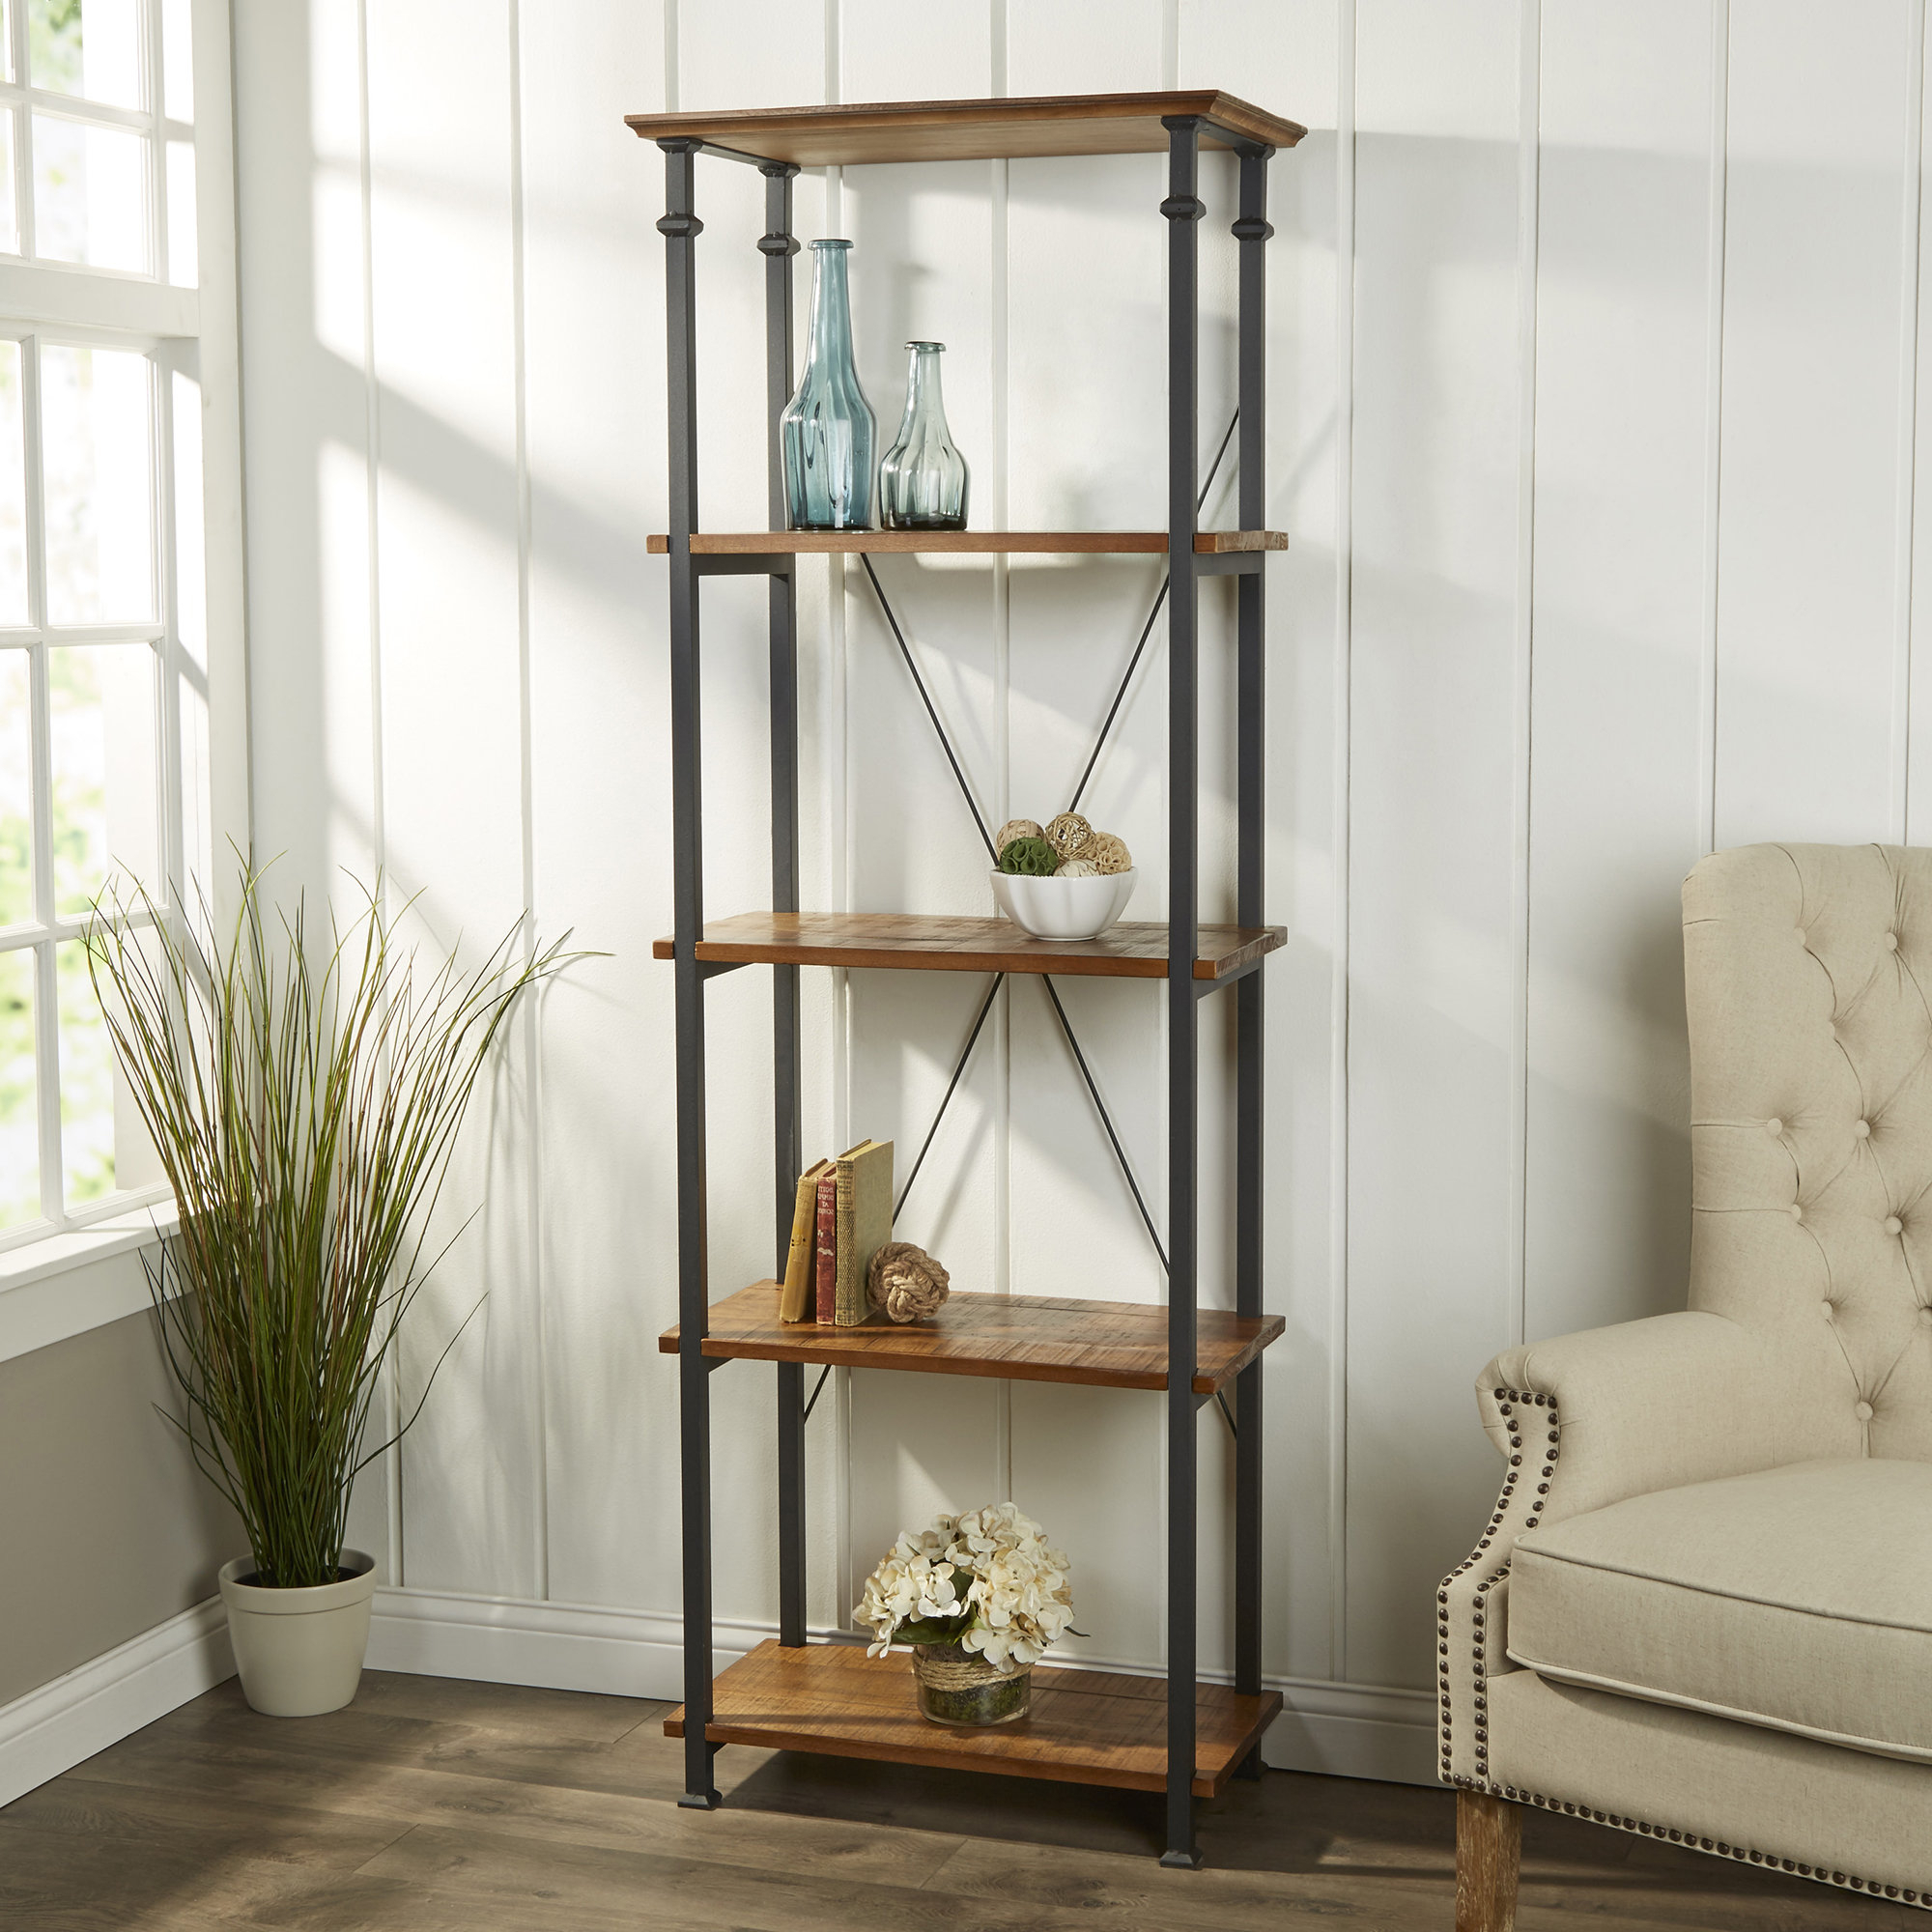 Farmhouse & Rustic Solid Wood Bookcases & Bookshelves Pertaining To Favorite Noelle Ashlynn Ladder Bookcases (View 7 of 20)